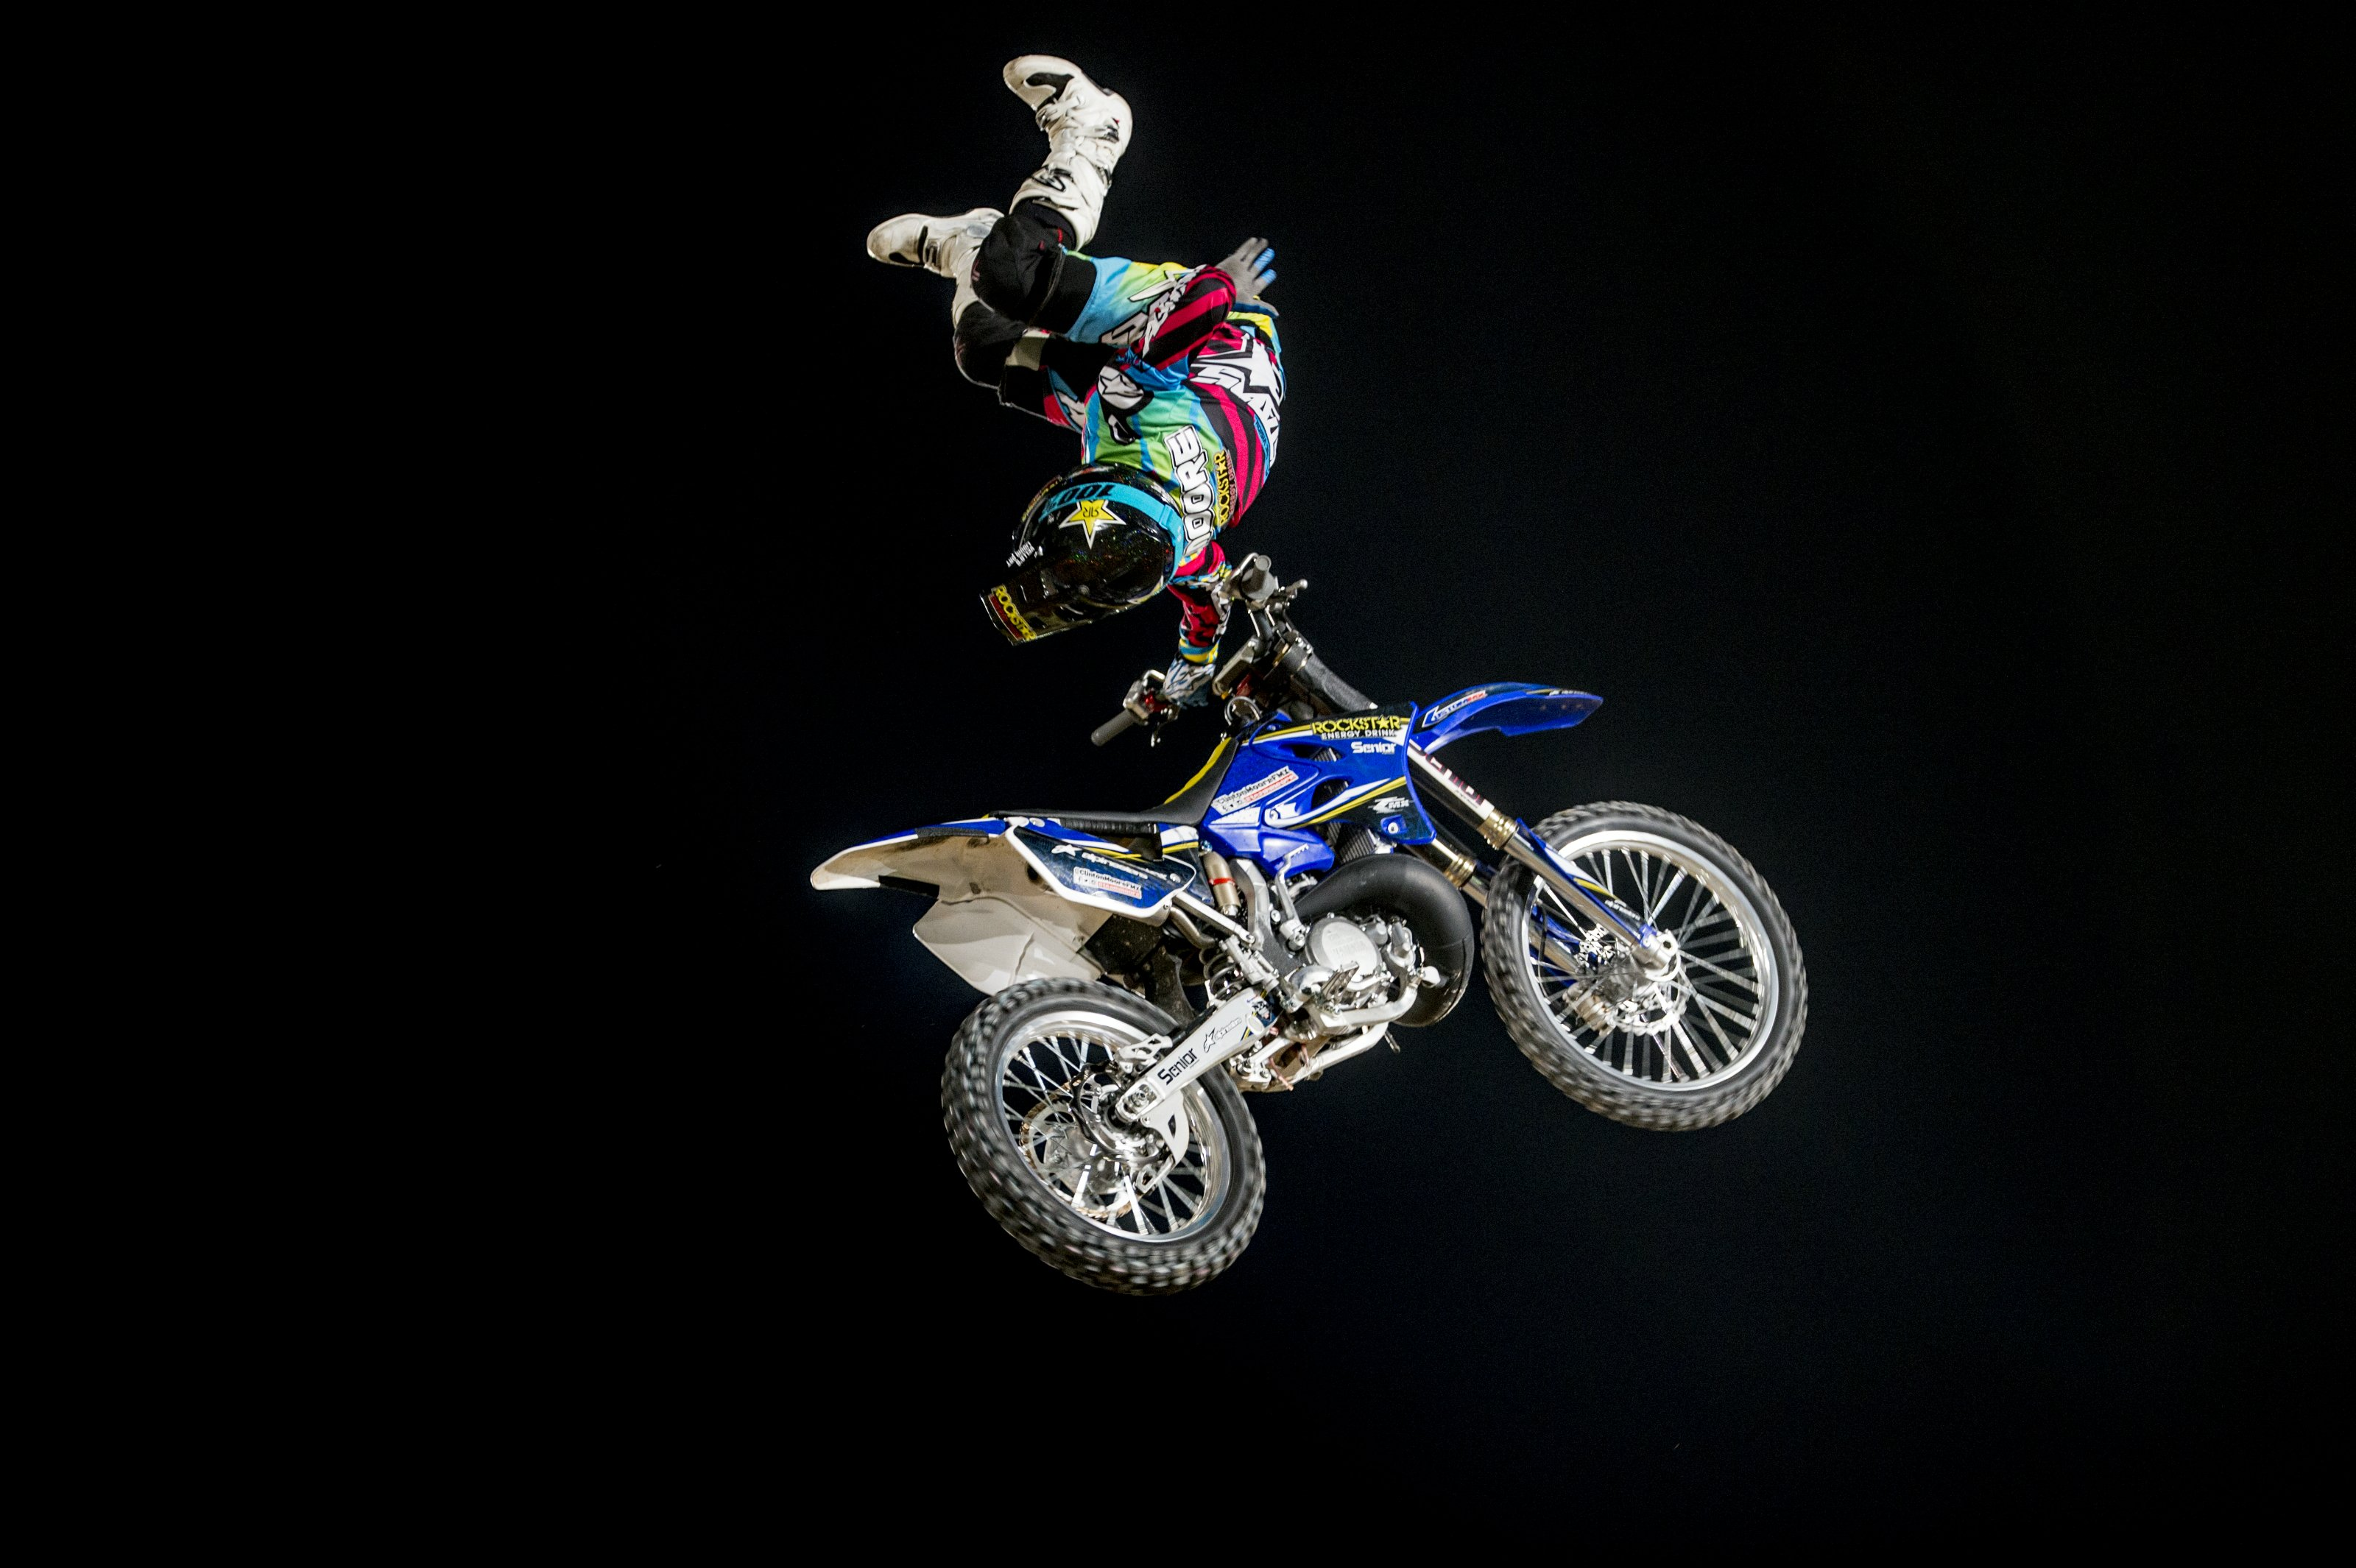 red bull x fighters rider profile videos fmx lw mag. Black Bedroom Furniture Sets. Home Design Ideas